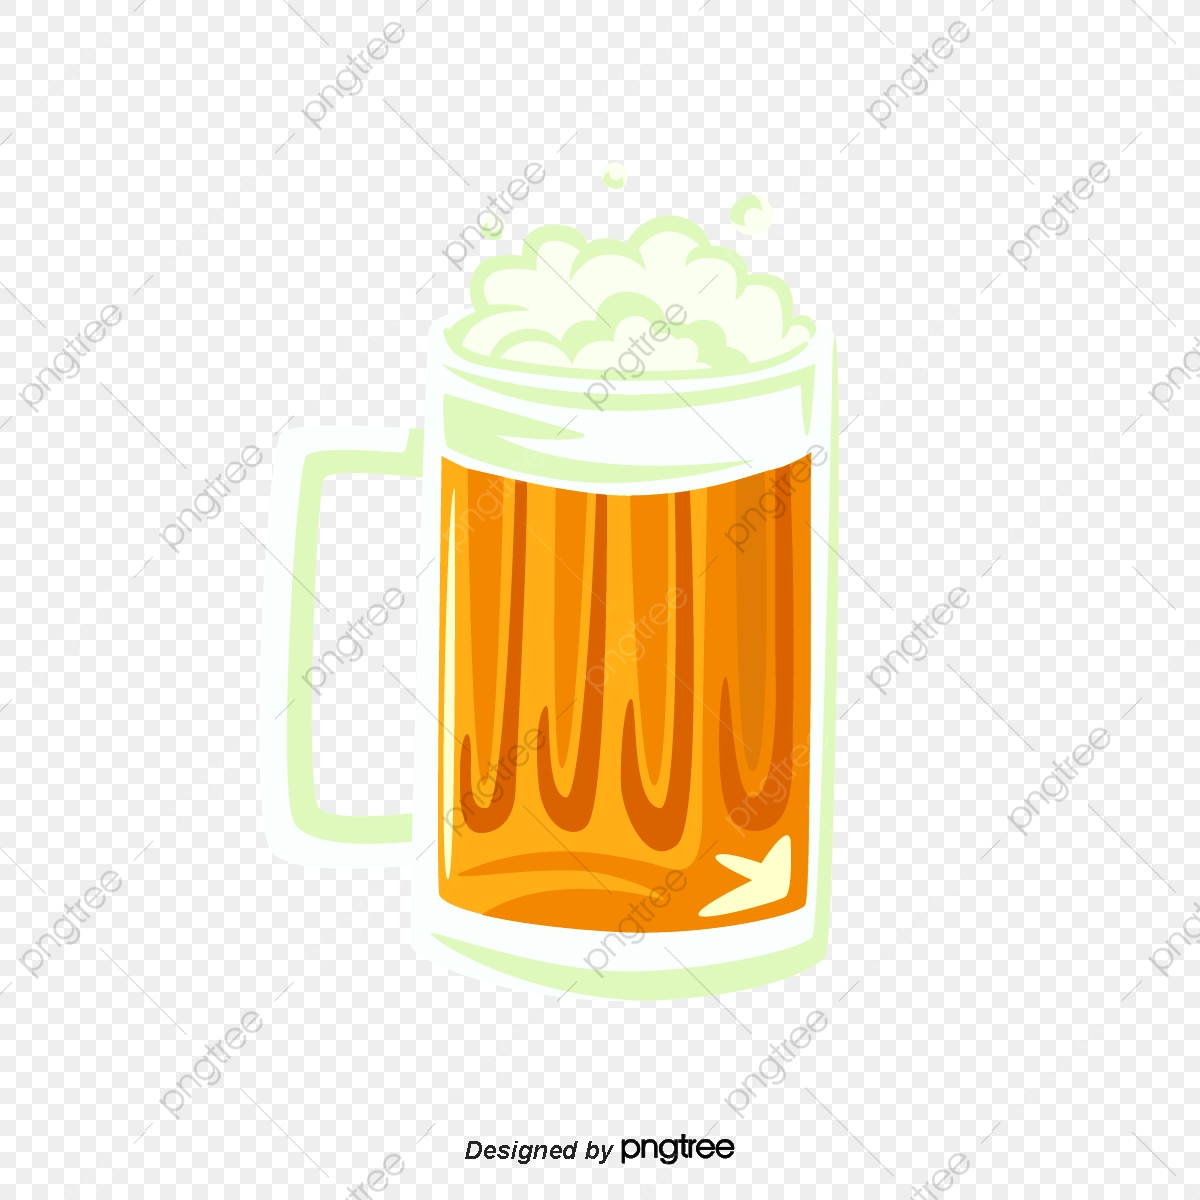 Full of glass png. Bar clipart beer bar